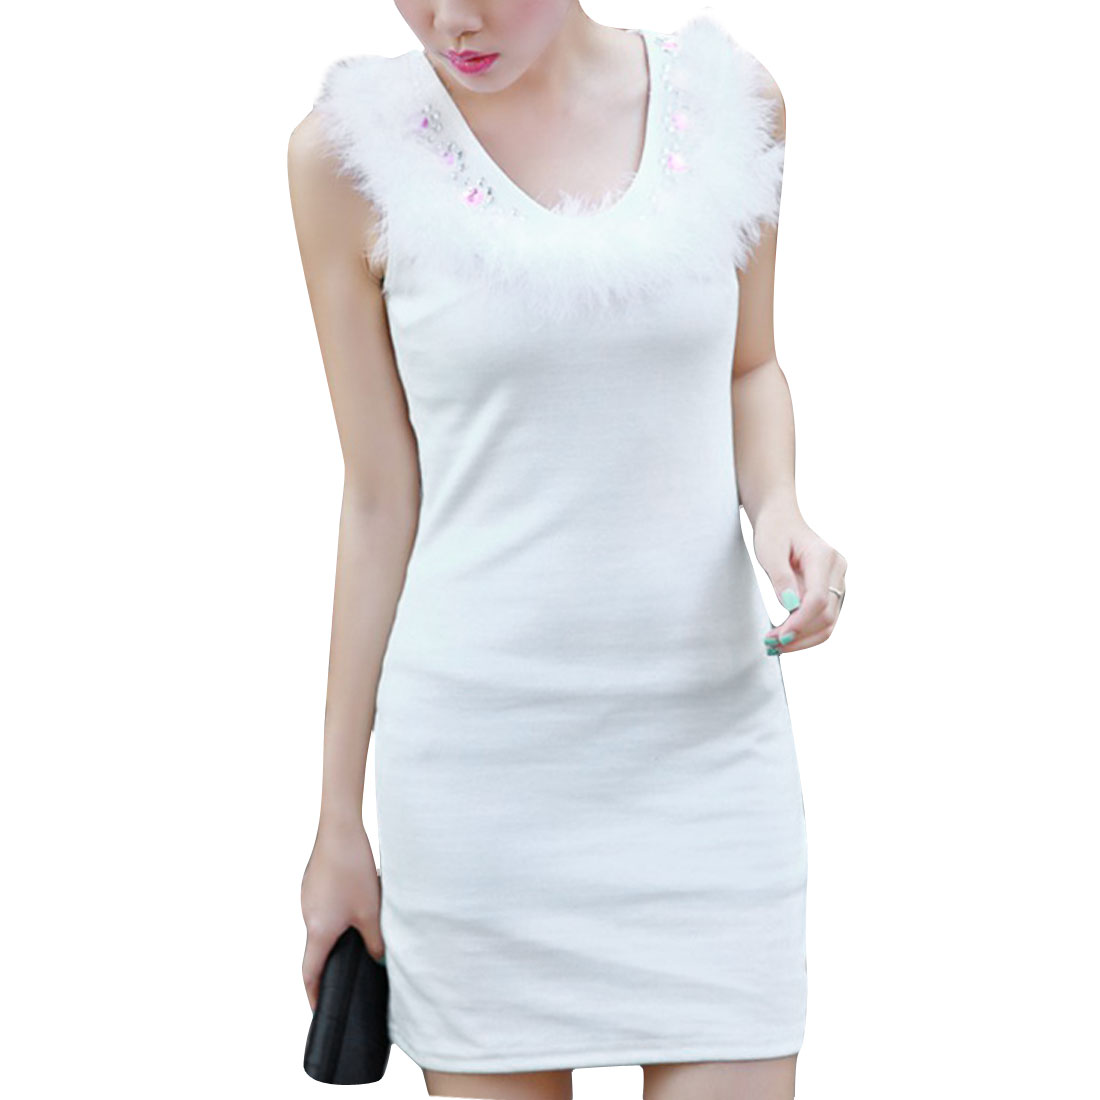 Women Scoop Neck Sleeveless Fashionable Sweet Dress White XS